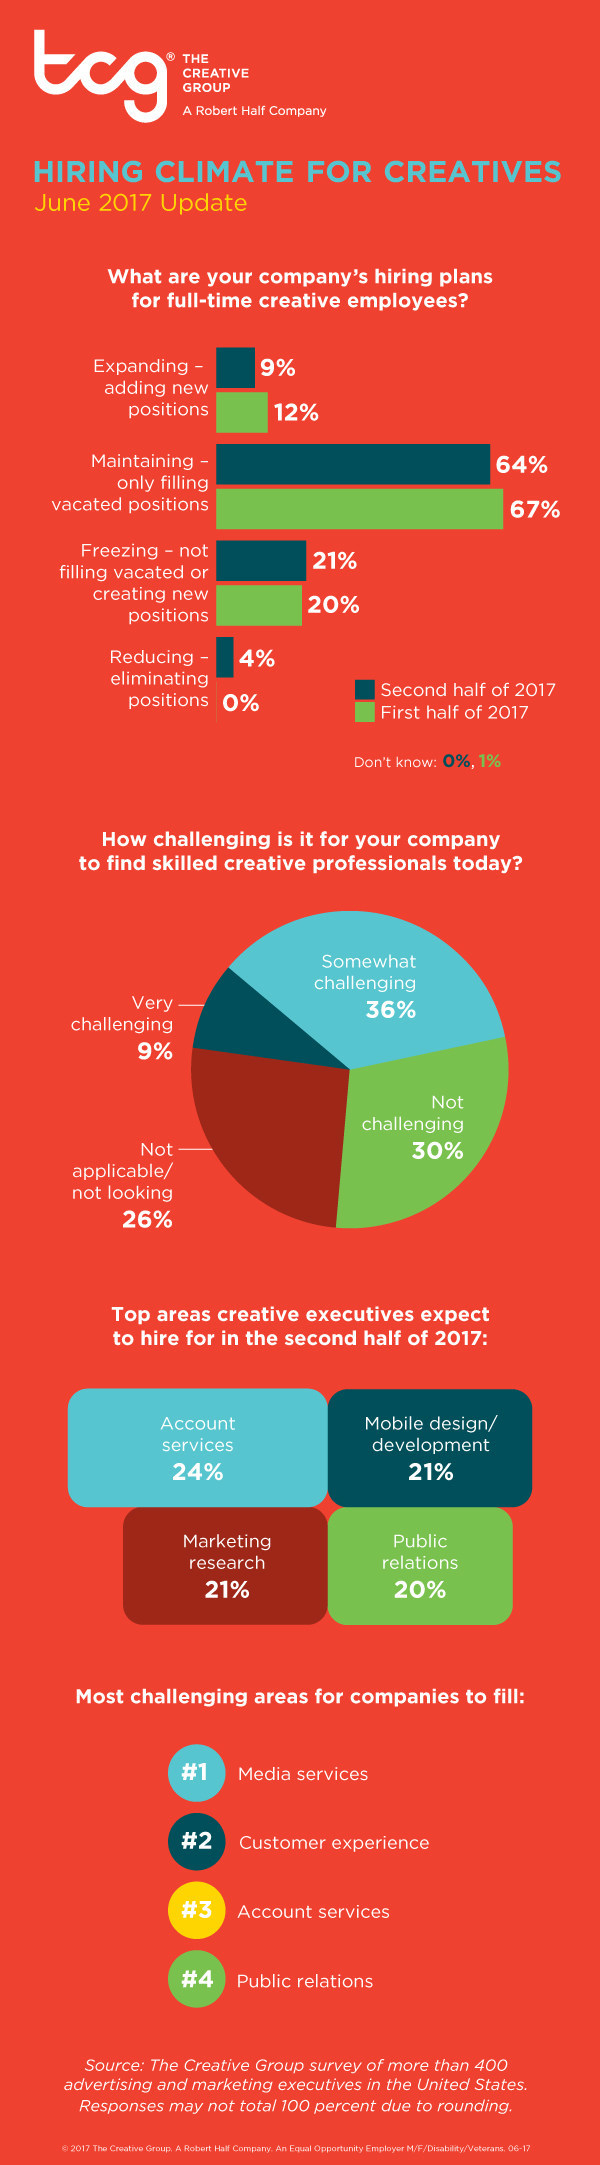 Research from The Creative Group reveals U.S. advertising and marketing executives' hiring plans for second half of 2017